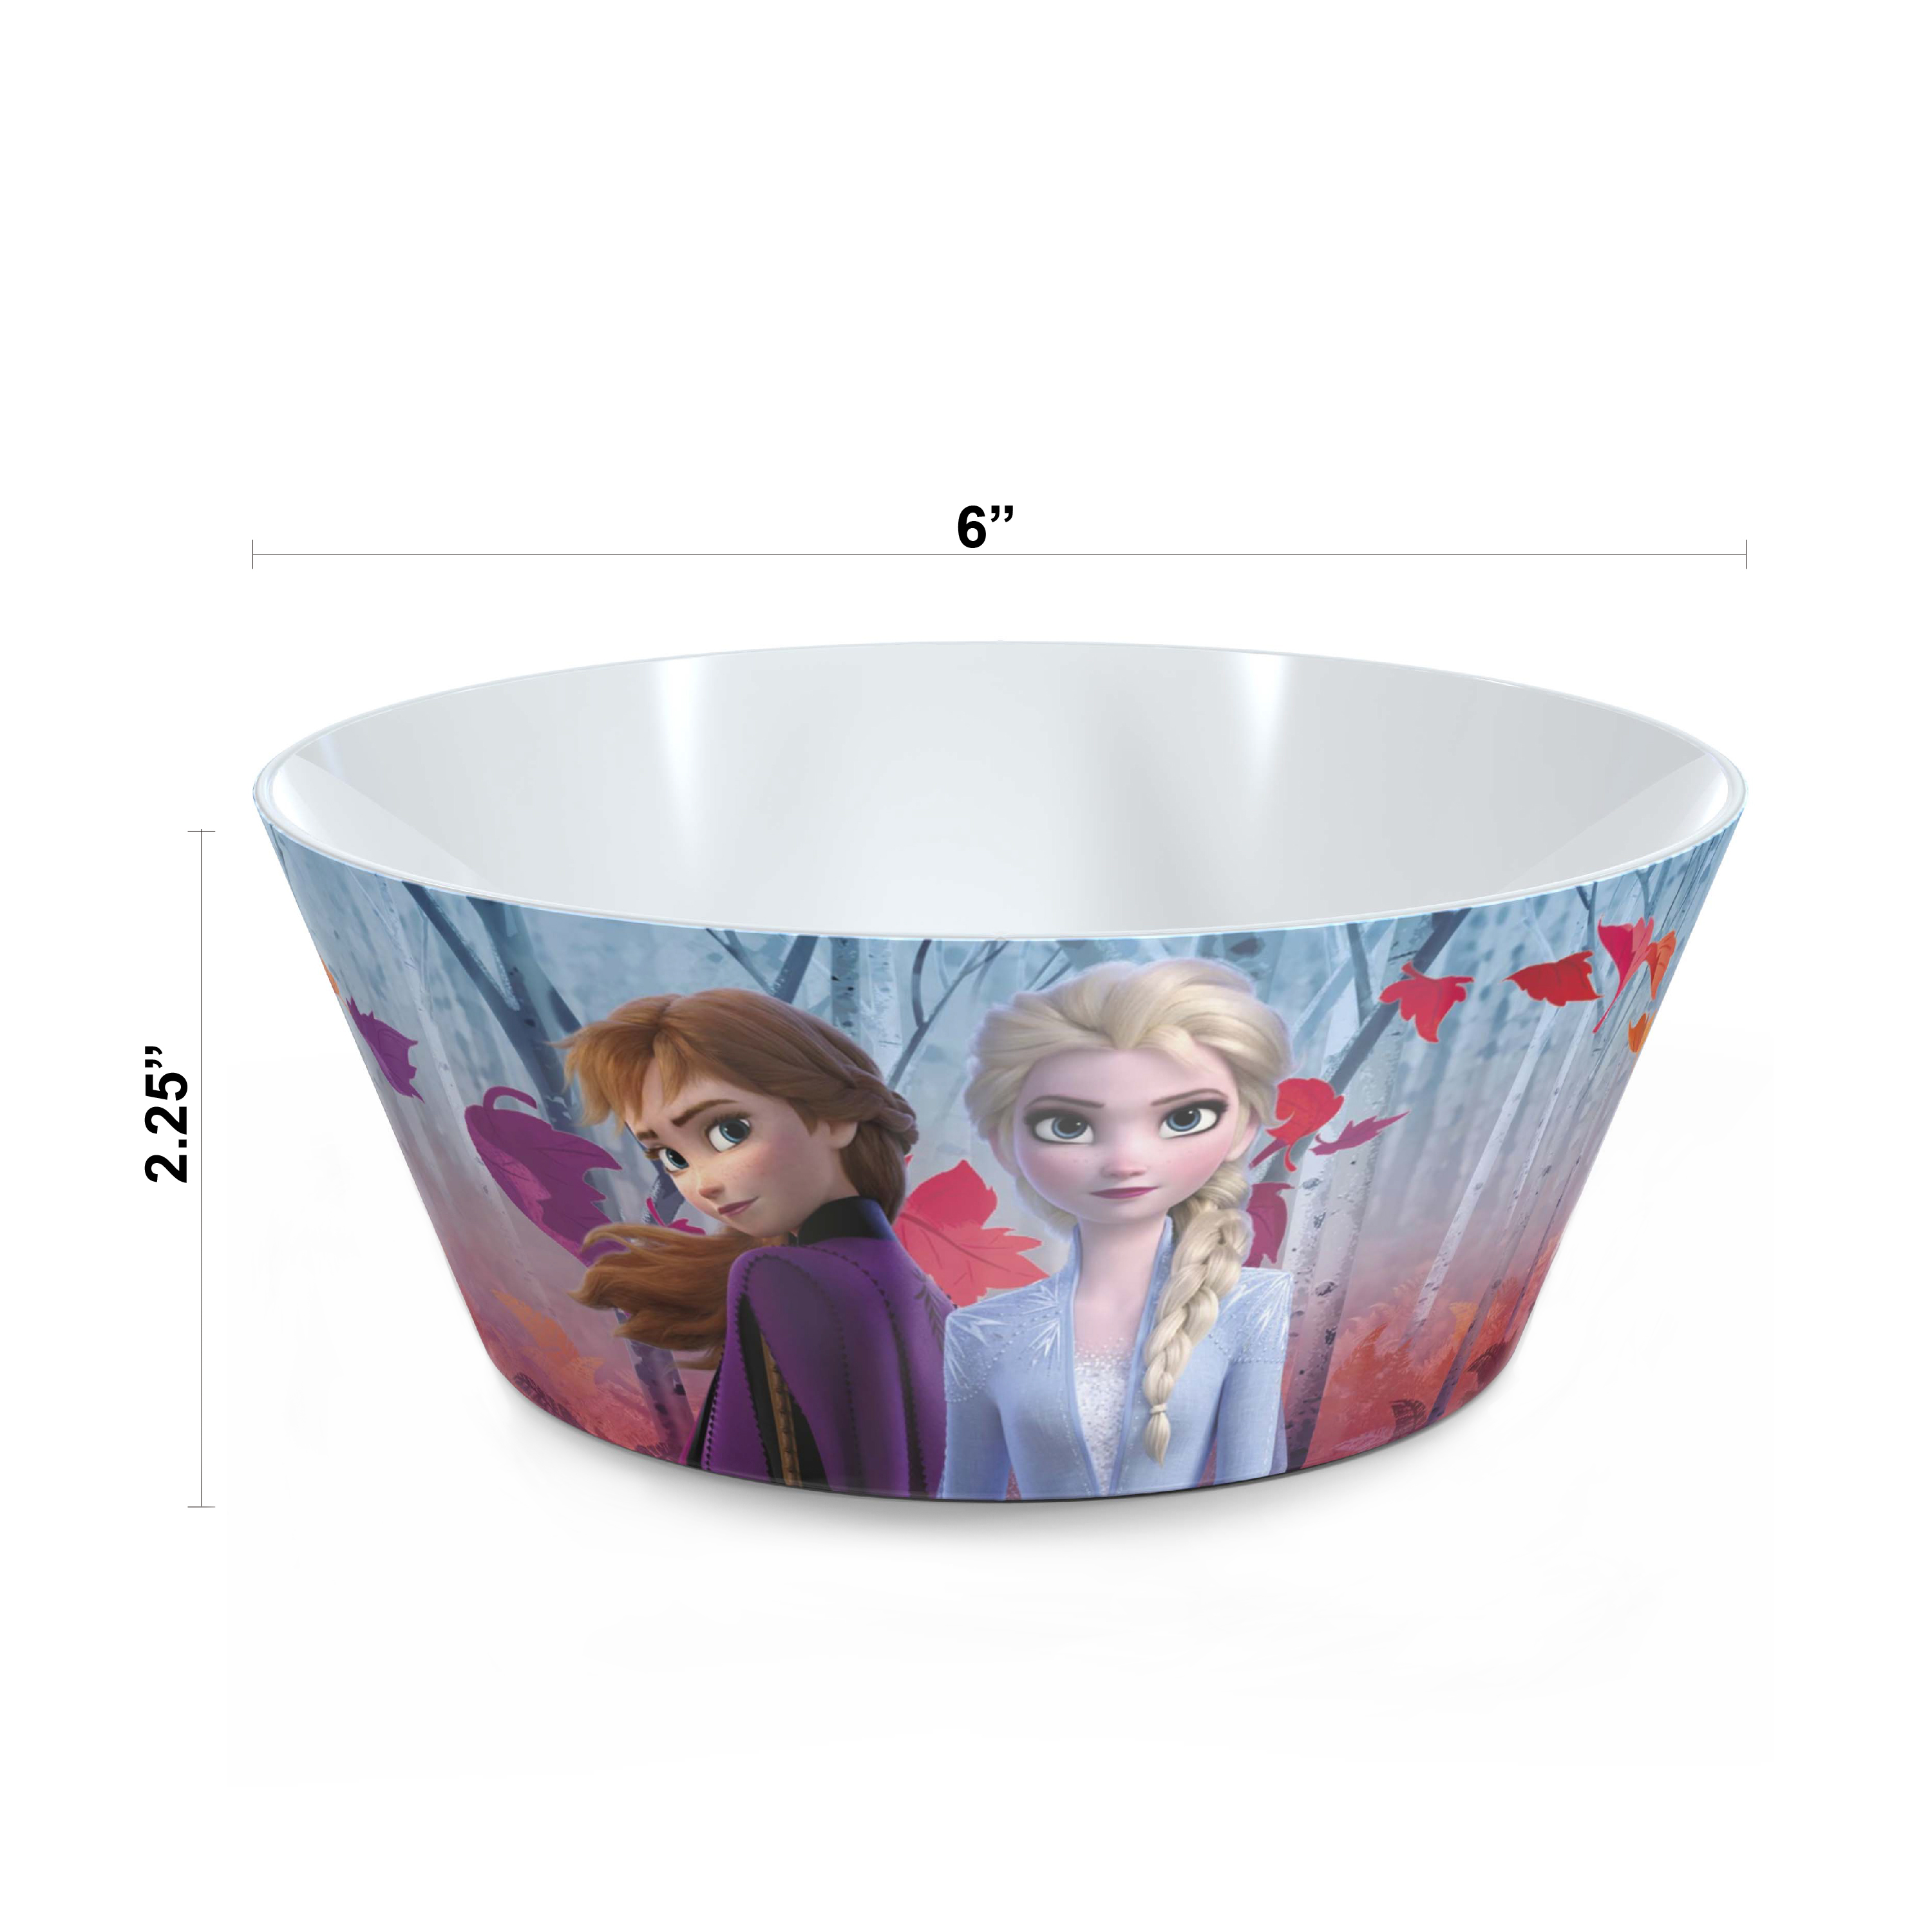 Disney Frozen 2 Movie Dinnerware Set, Anna and Elsa, 5-piece set slideshow image 6